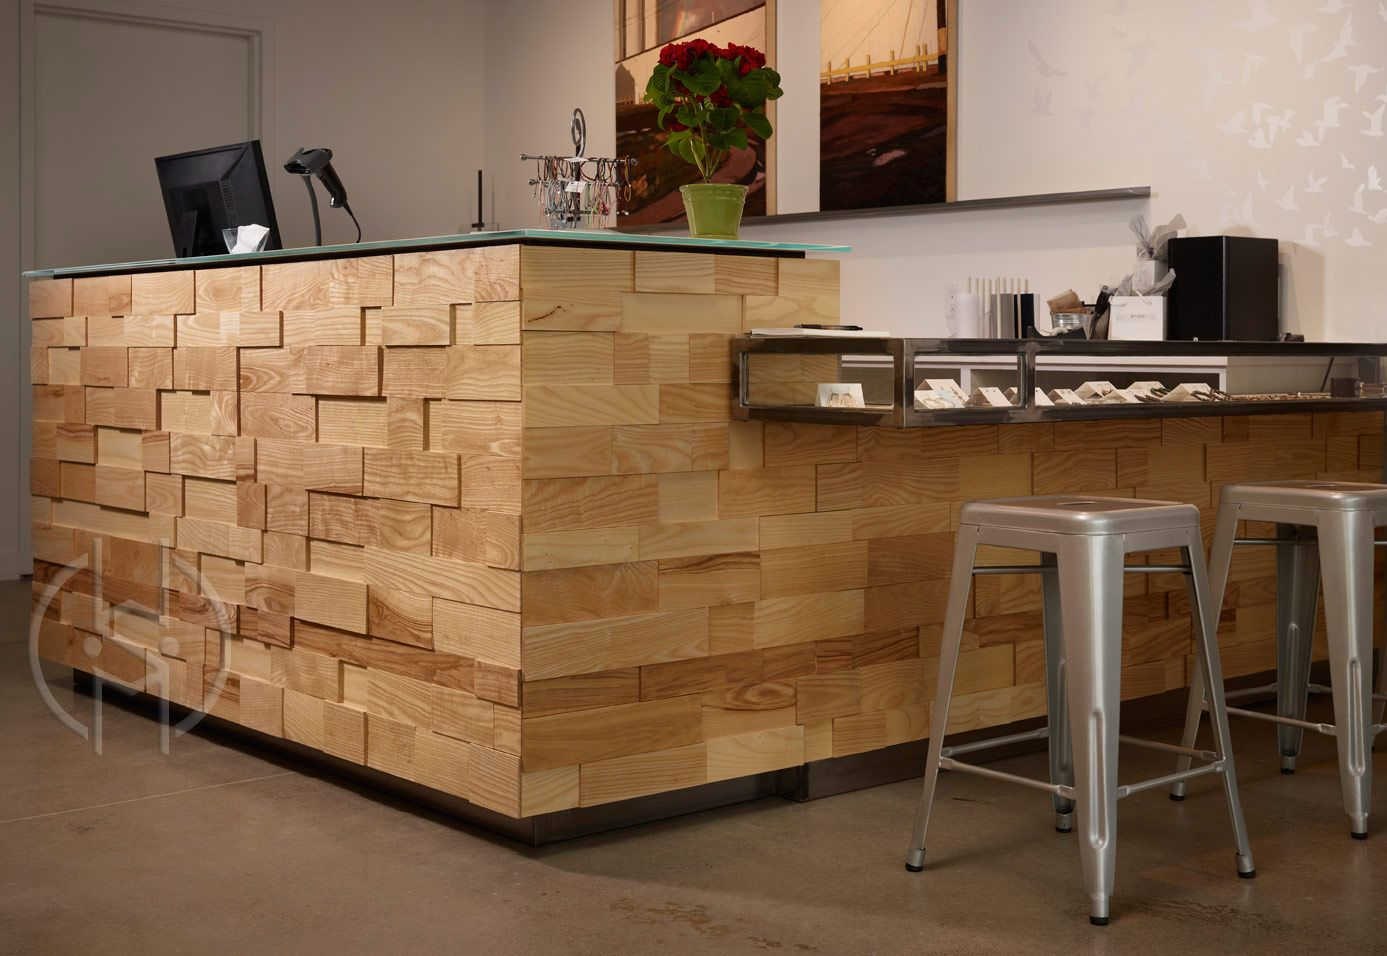 kitchen stores denver mobile rental a cash wrap for the new reverie boutique in 39s lohi